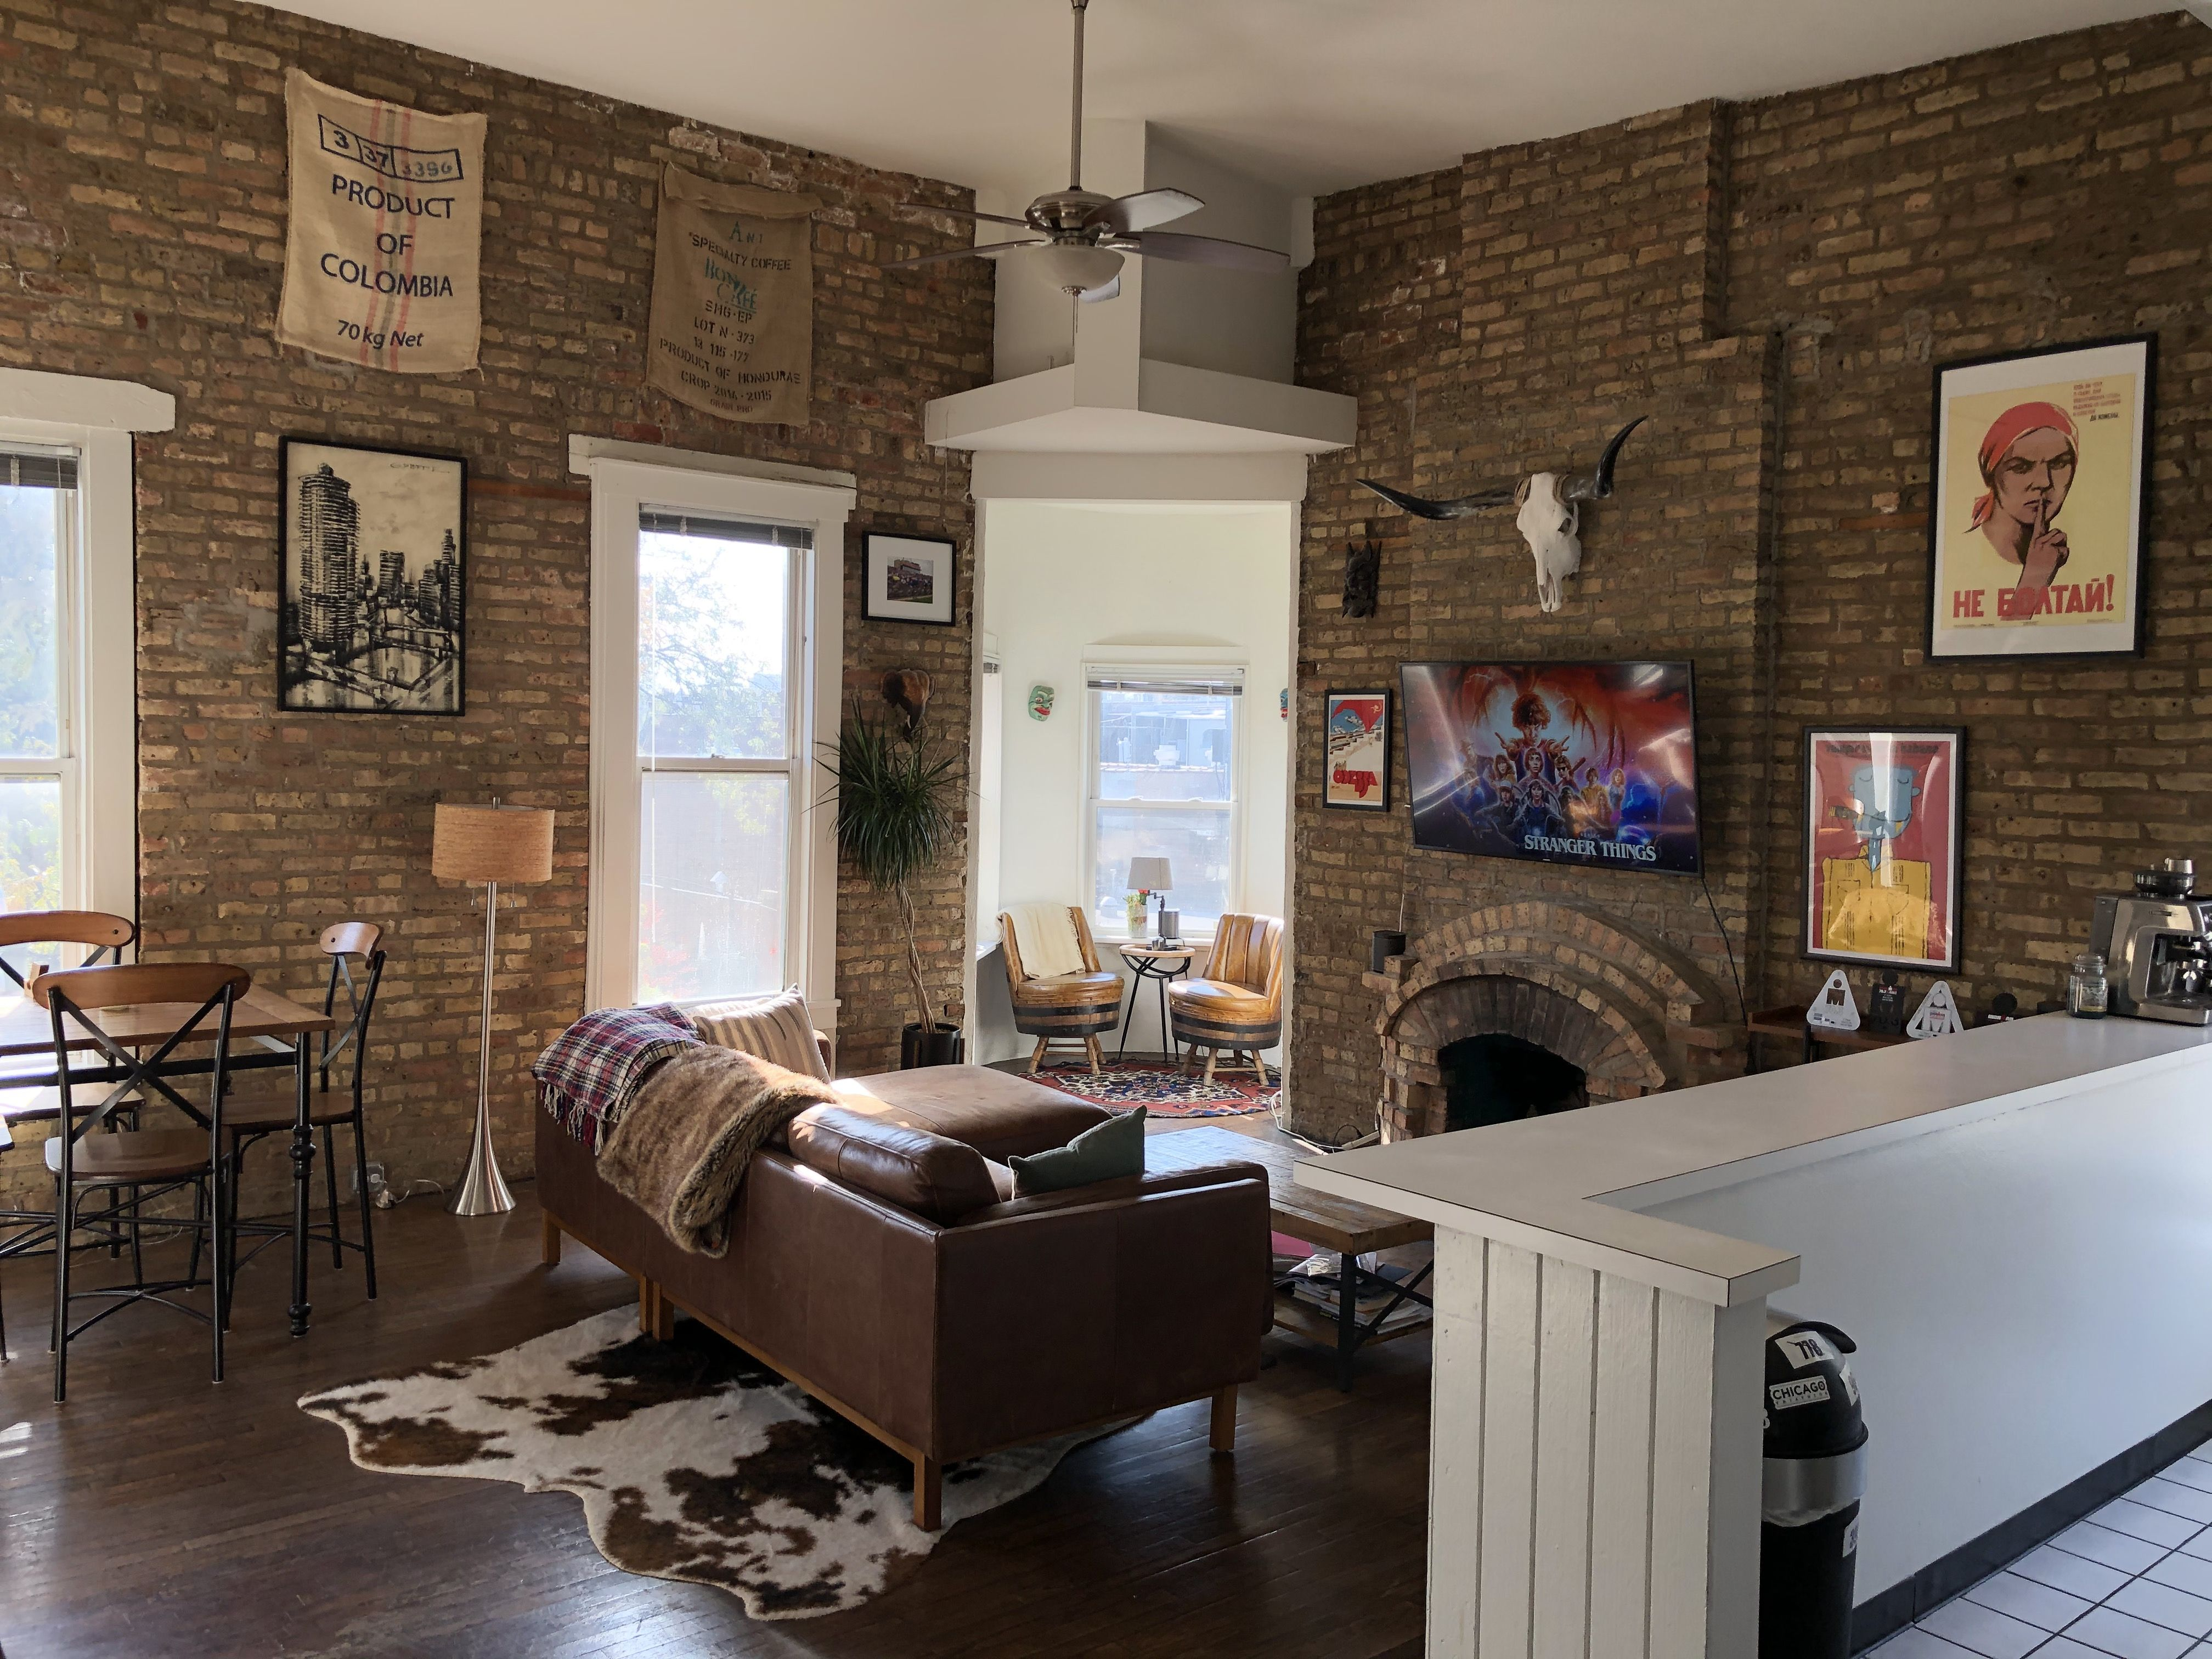 Eclectic Style In Vintage Chicago Apartment Vintage Apartment Chicago Apartment One Bedroom Apartment